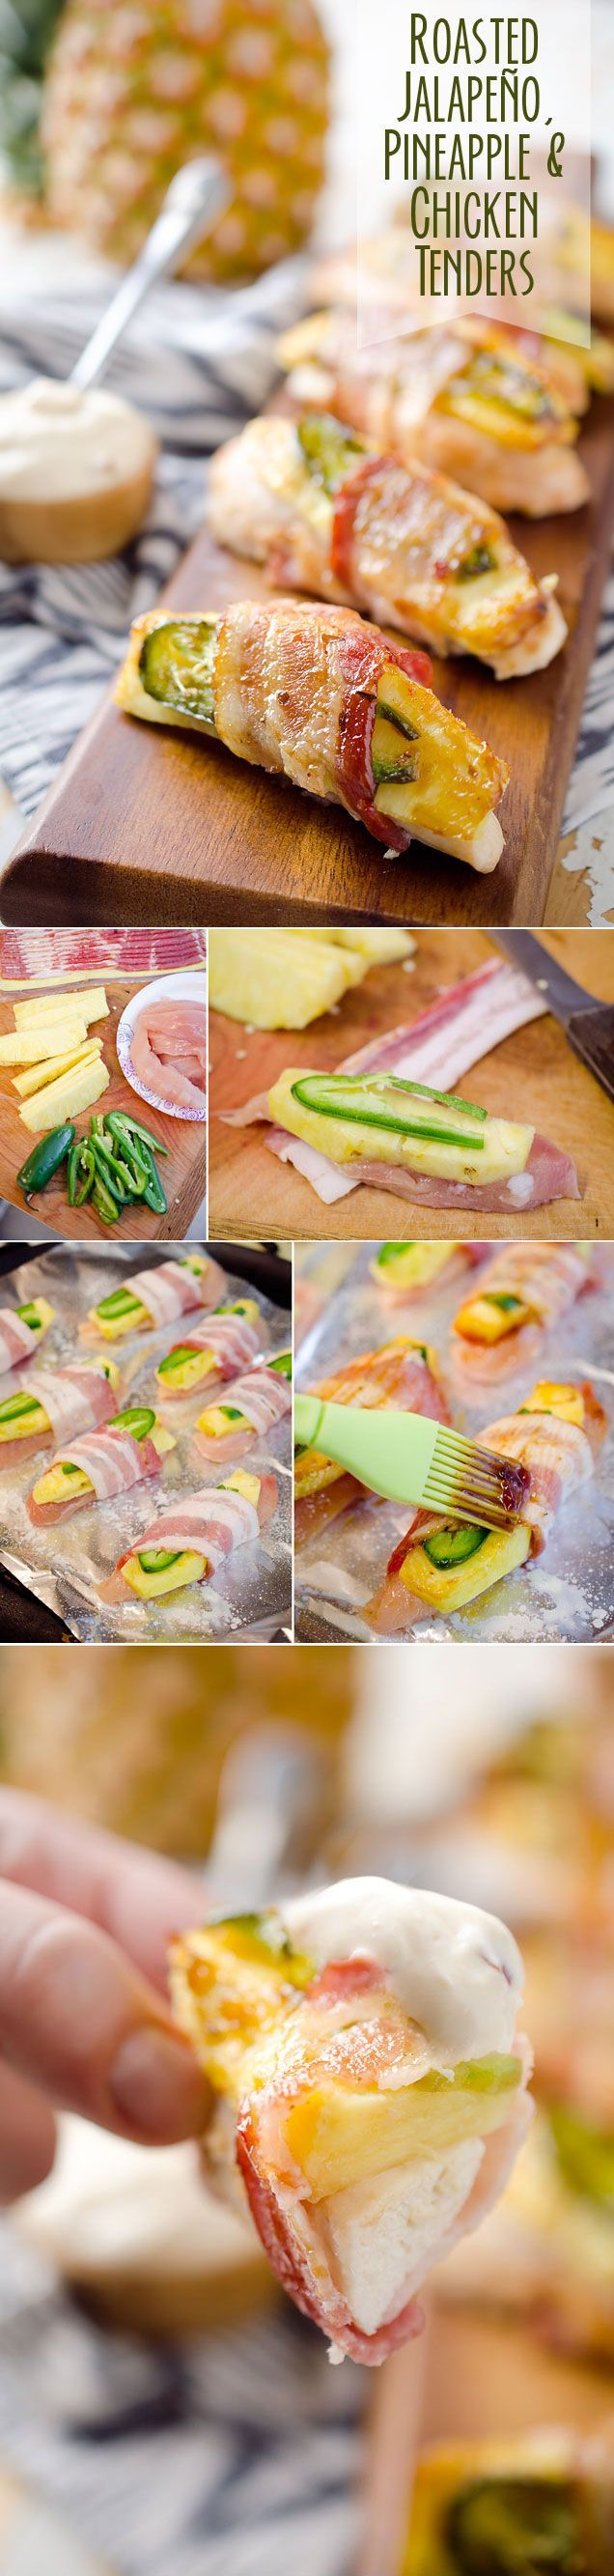 Roasted Jalapeño, Pineapple & Chicken Tenders - Juicy pieces of chicken breast wrapped up with a slice of jalapeño and pineapple in a flavorful piece of bacon served with a spicy szechuan Greek yogurt sauce. These make a great appetizer recipe or a fun and healthy dinner idea!